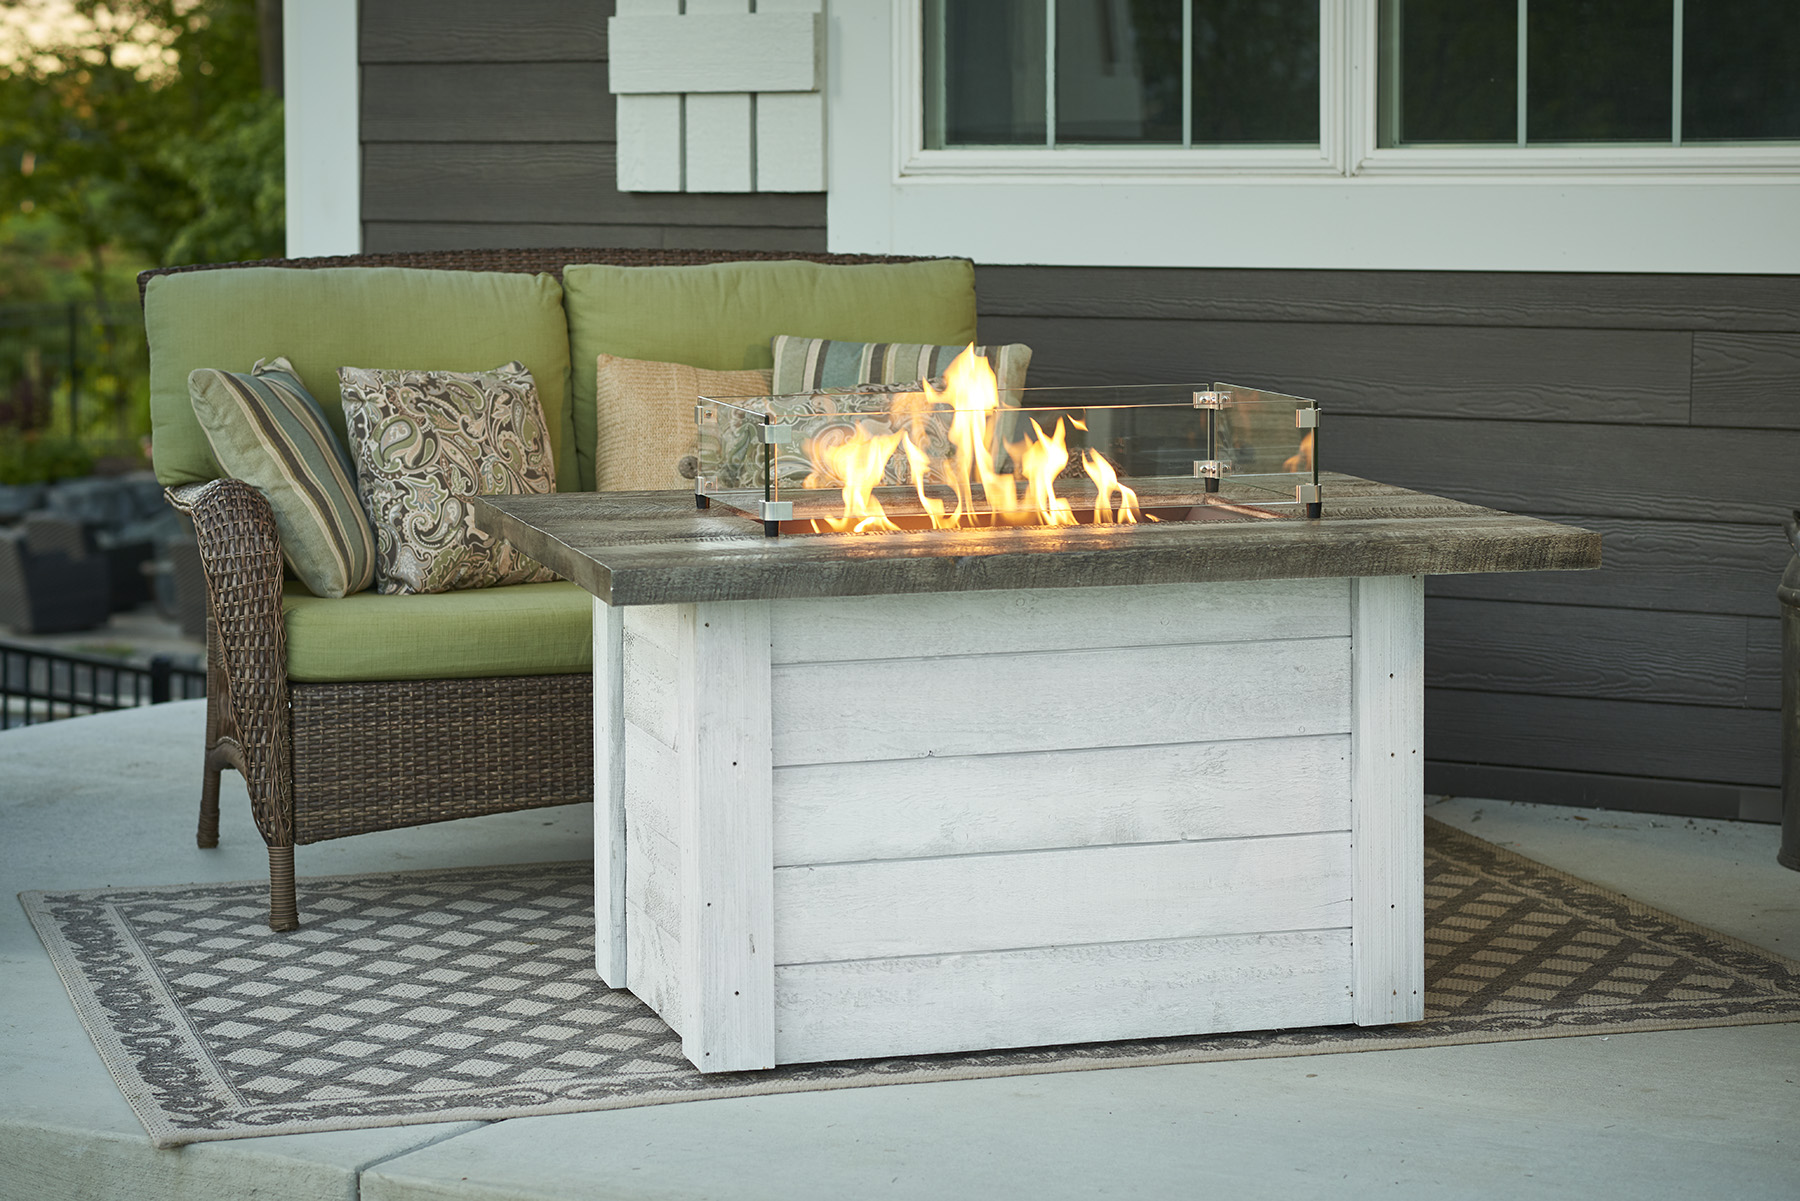 Outdoor Great Room Rectangular Fire Tables Protech Gasfitting Amp Plumbing